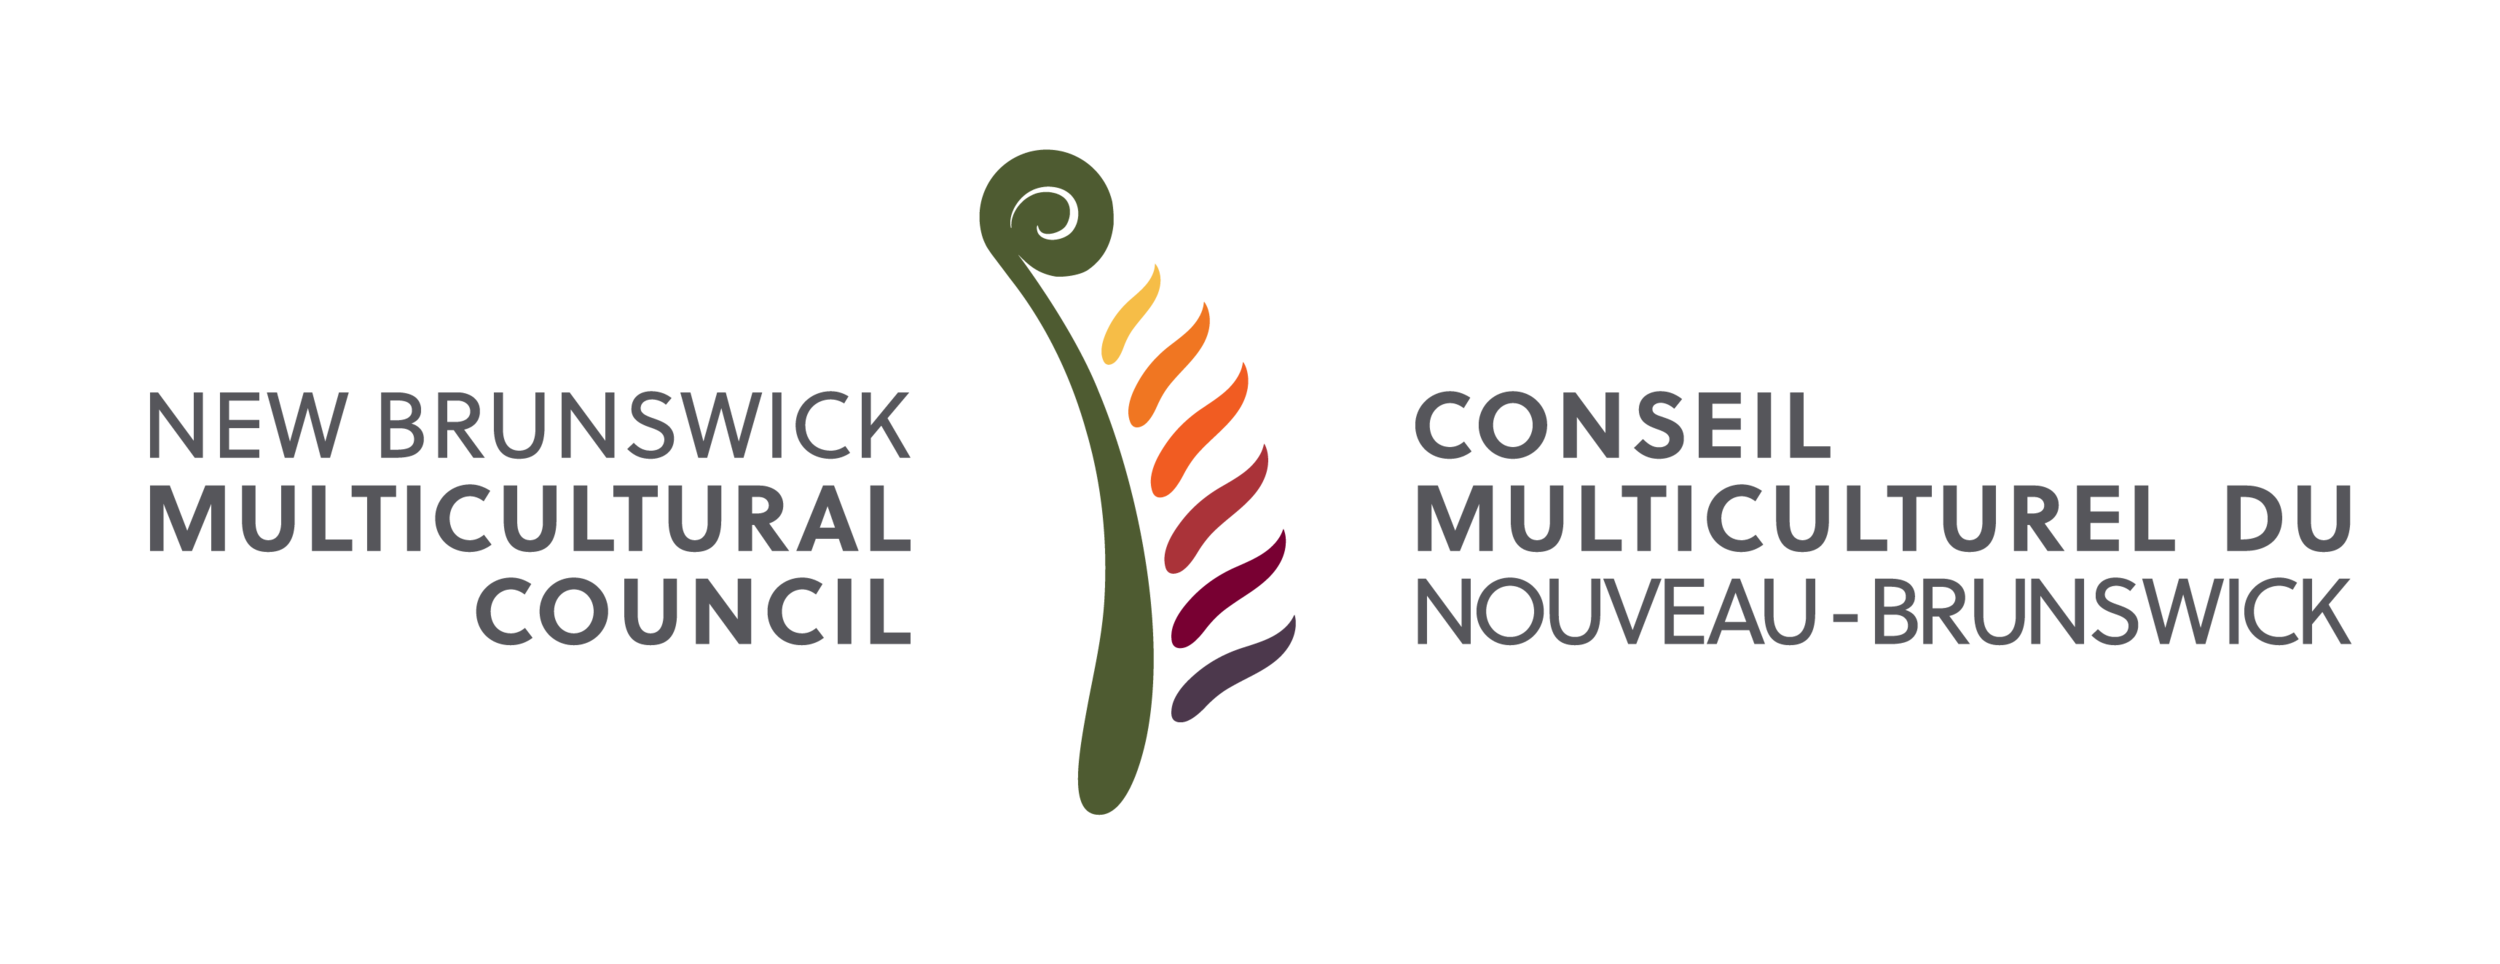 NB Multicultural Council_Horizontal Bilingual_Colour.png